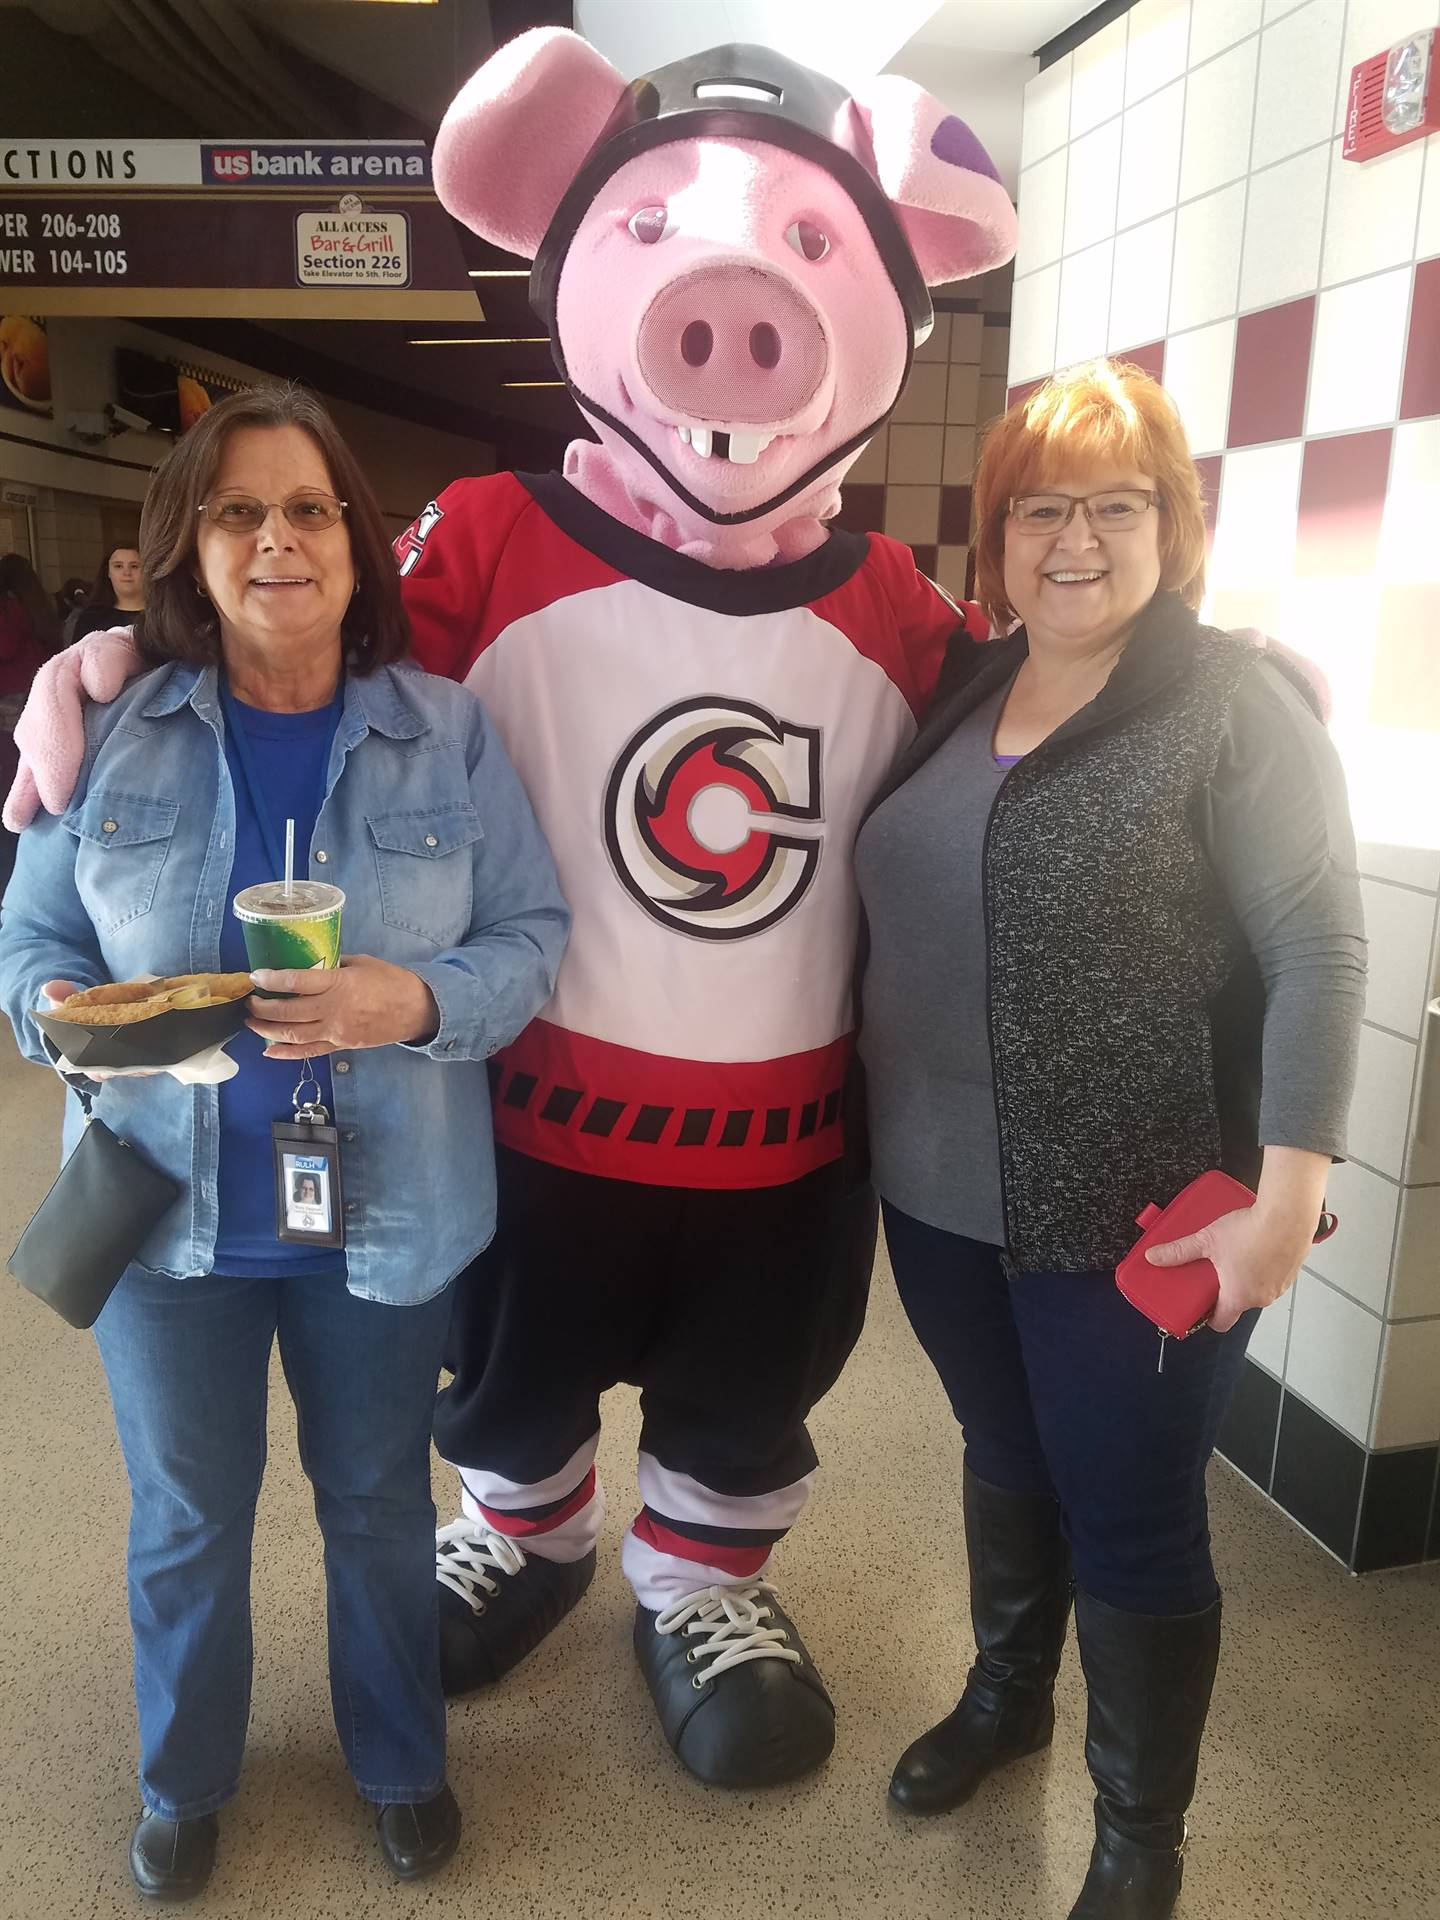 AAA Trip to a Cyclones Game